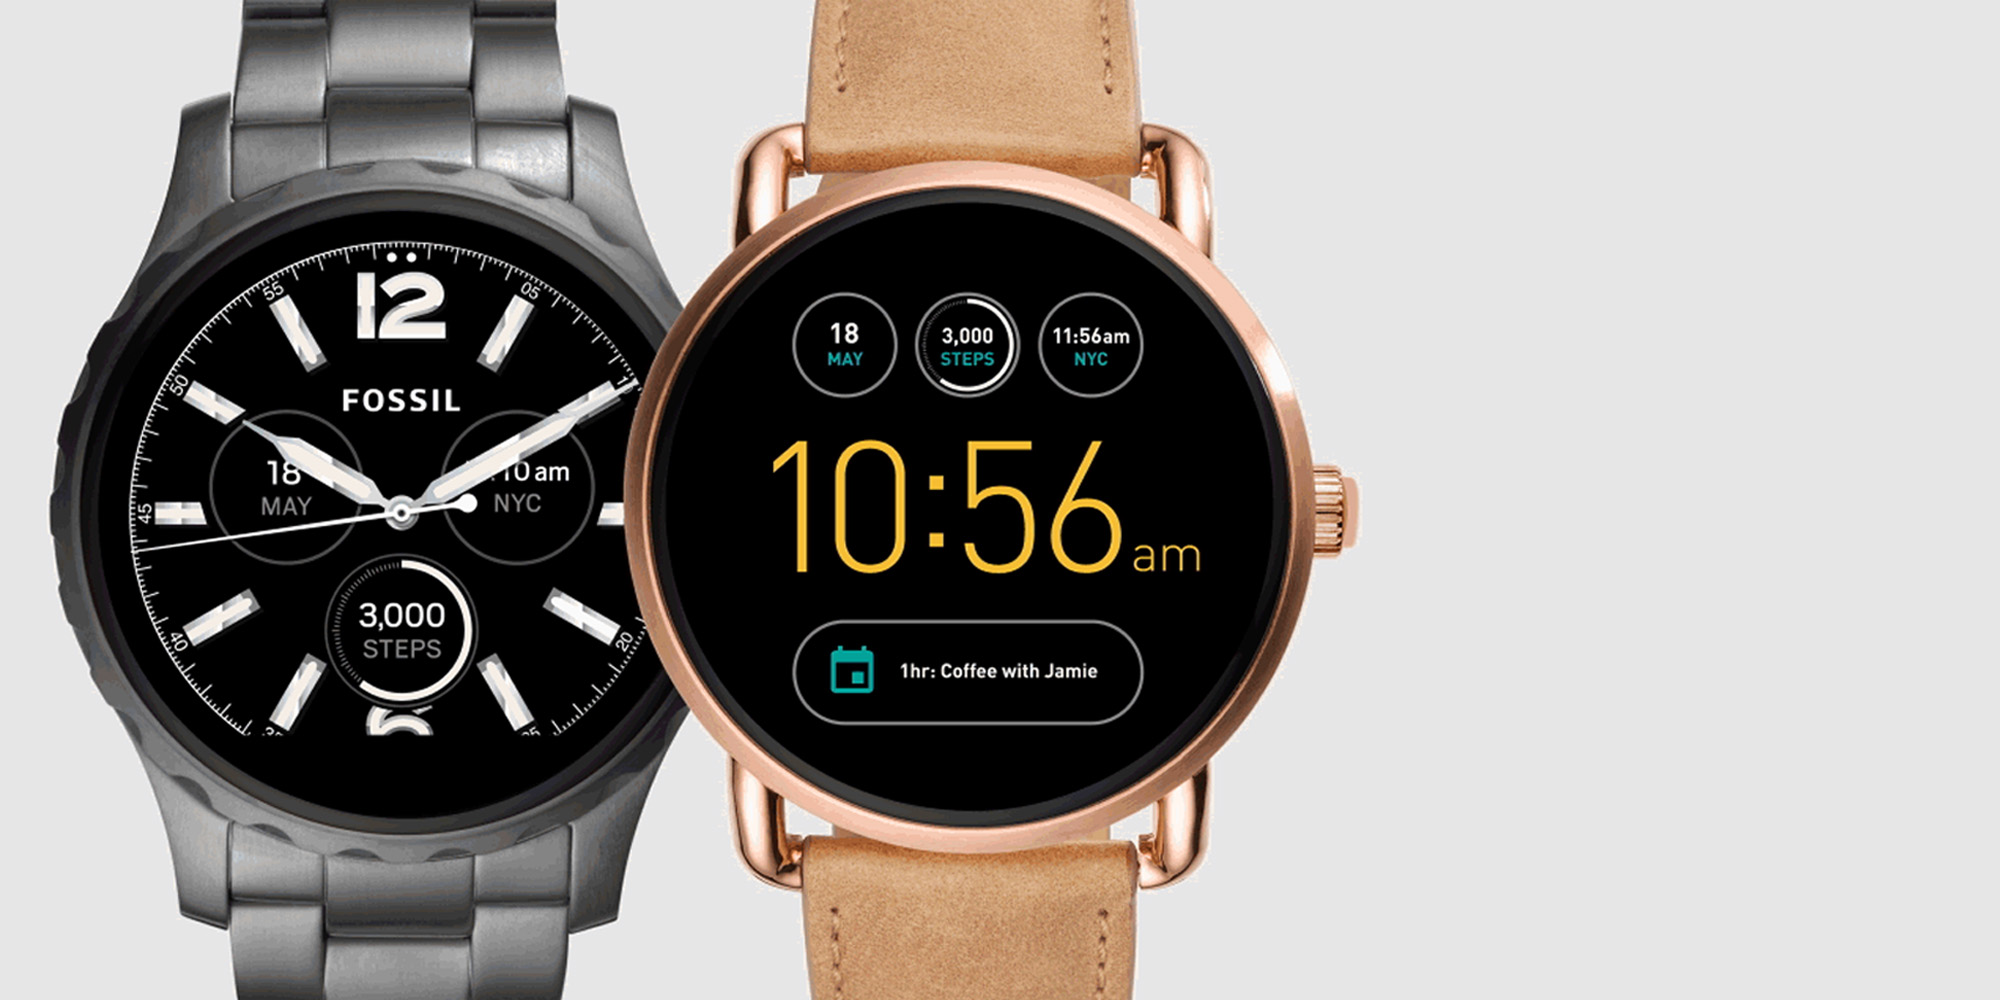 Amazon discounts Fossil Q Android Wear Smartwatches to $93 shipped